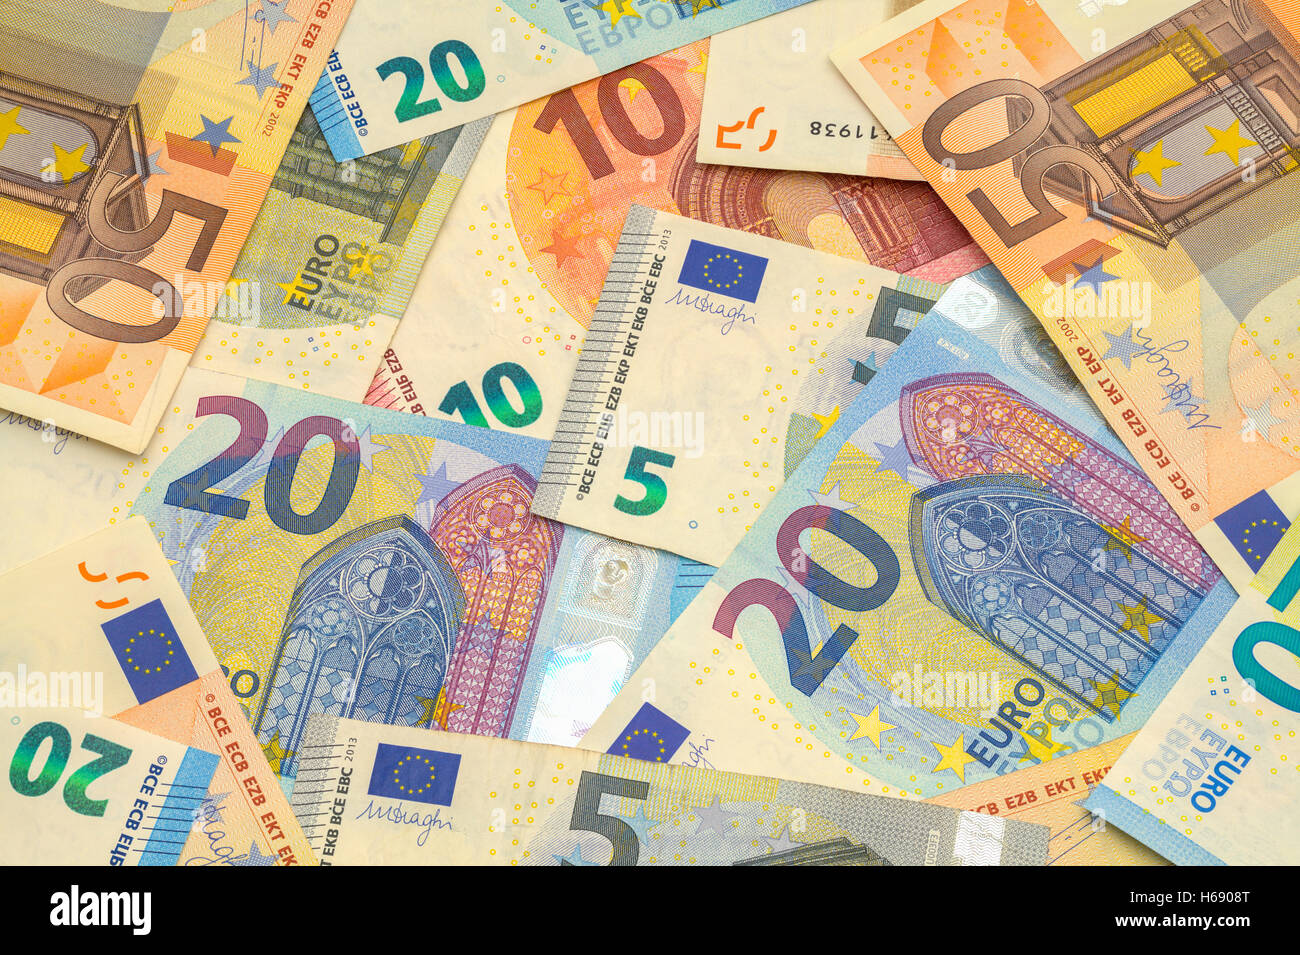 Scattered Pile of Euros with Various Bills. - Stock Image